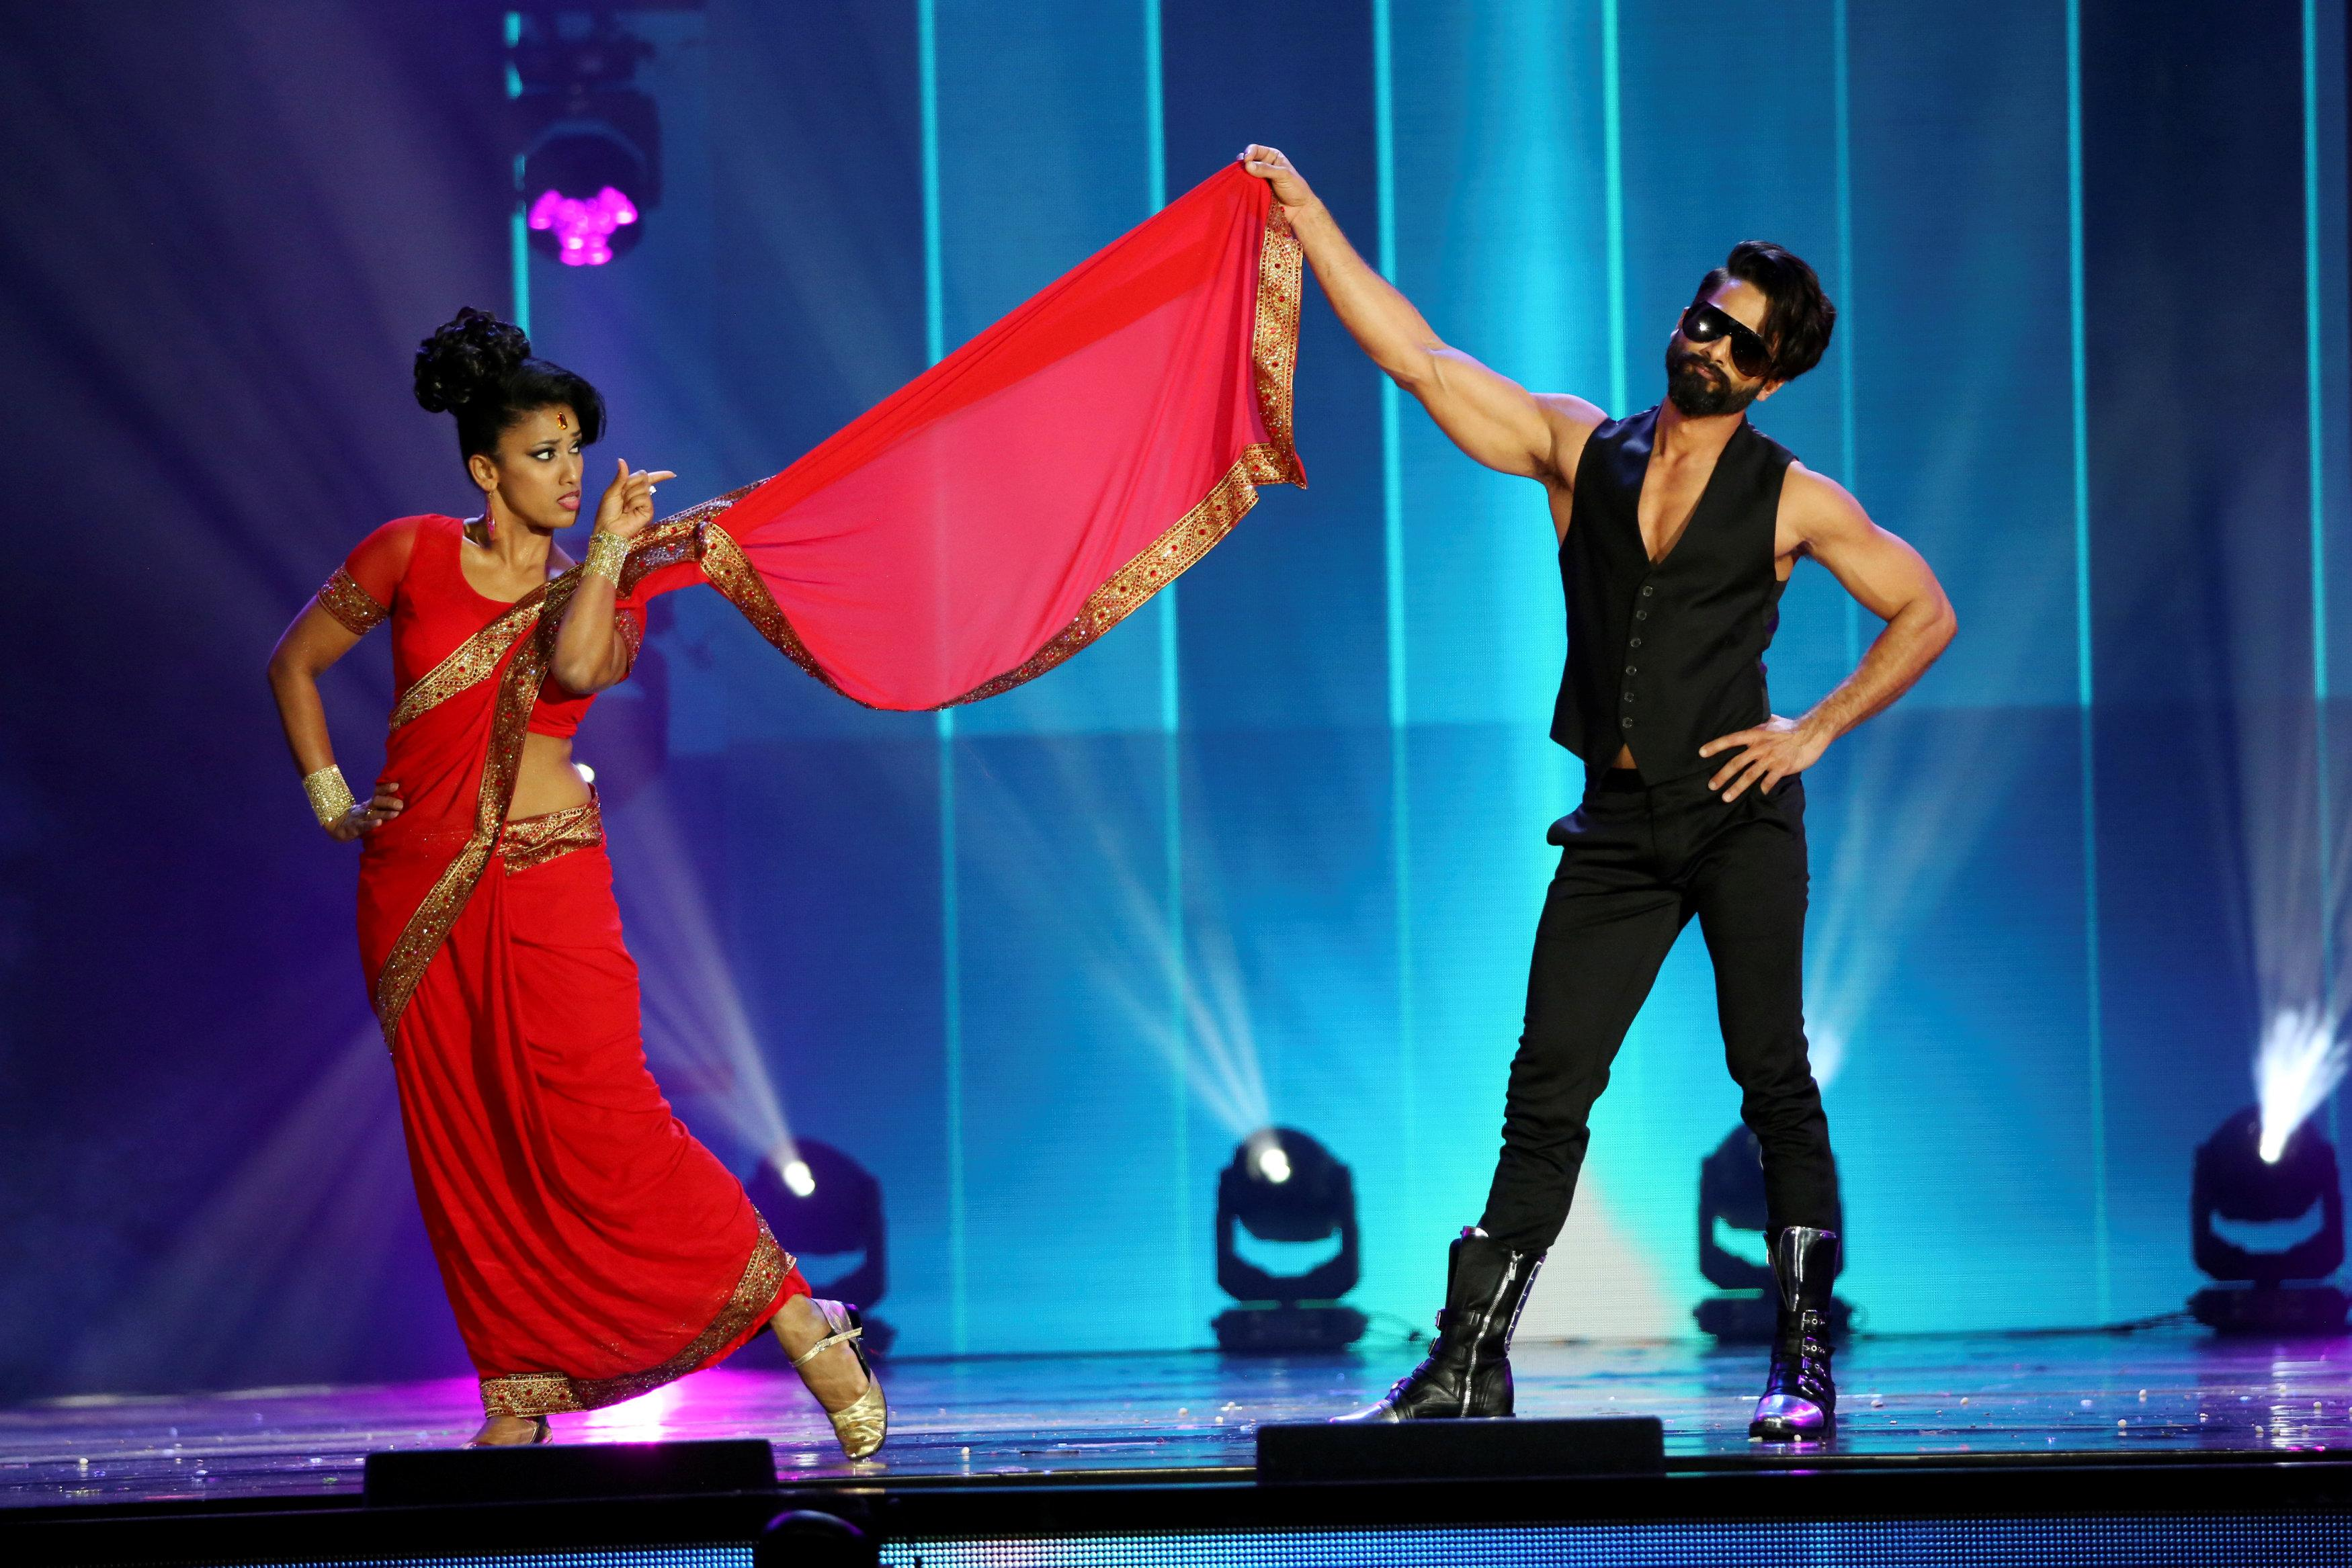 Actor Shahid Kapoor (R) performs at the International Indian Film Academy Awards (IIFA) show at MetLife Stadium in East Rutherford, New Jersey, U.S., July 16, 2017. REUTERS/Joe Penney